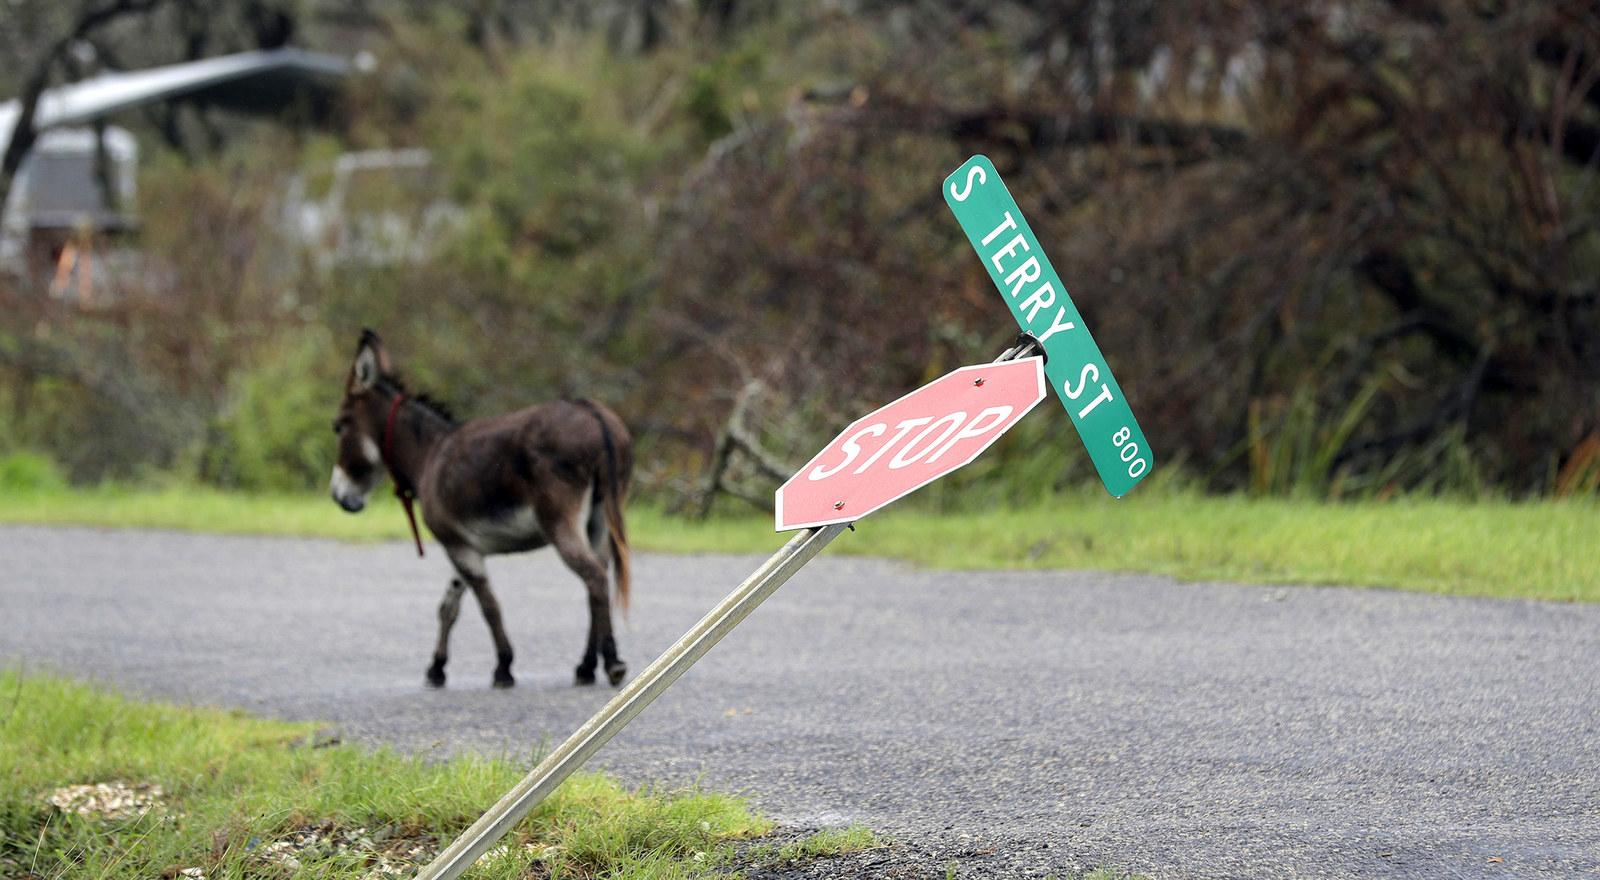 A loose donkey roams a street in Rockport, Texas, on Aug. 28.